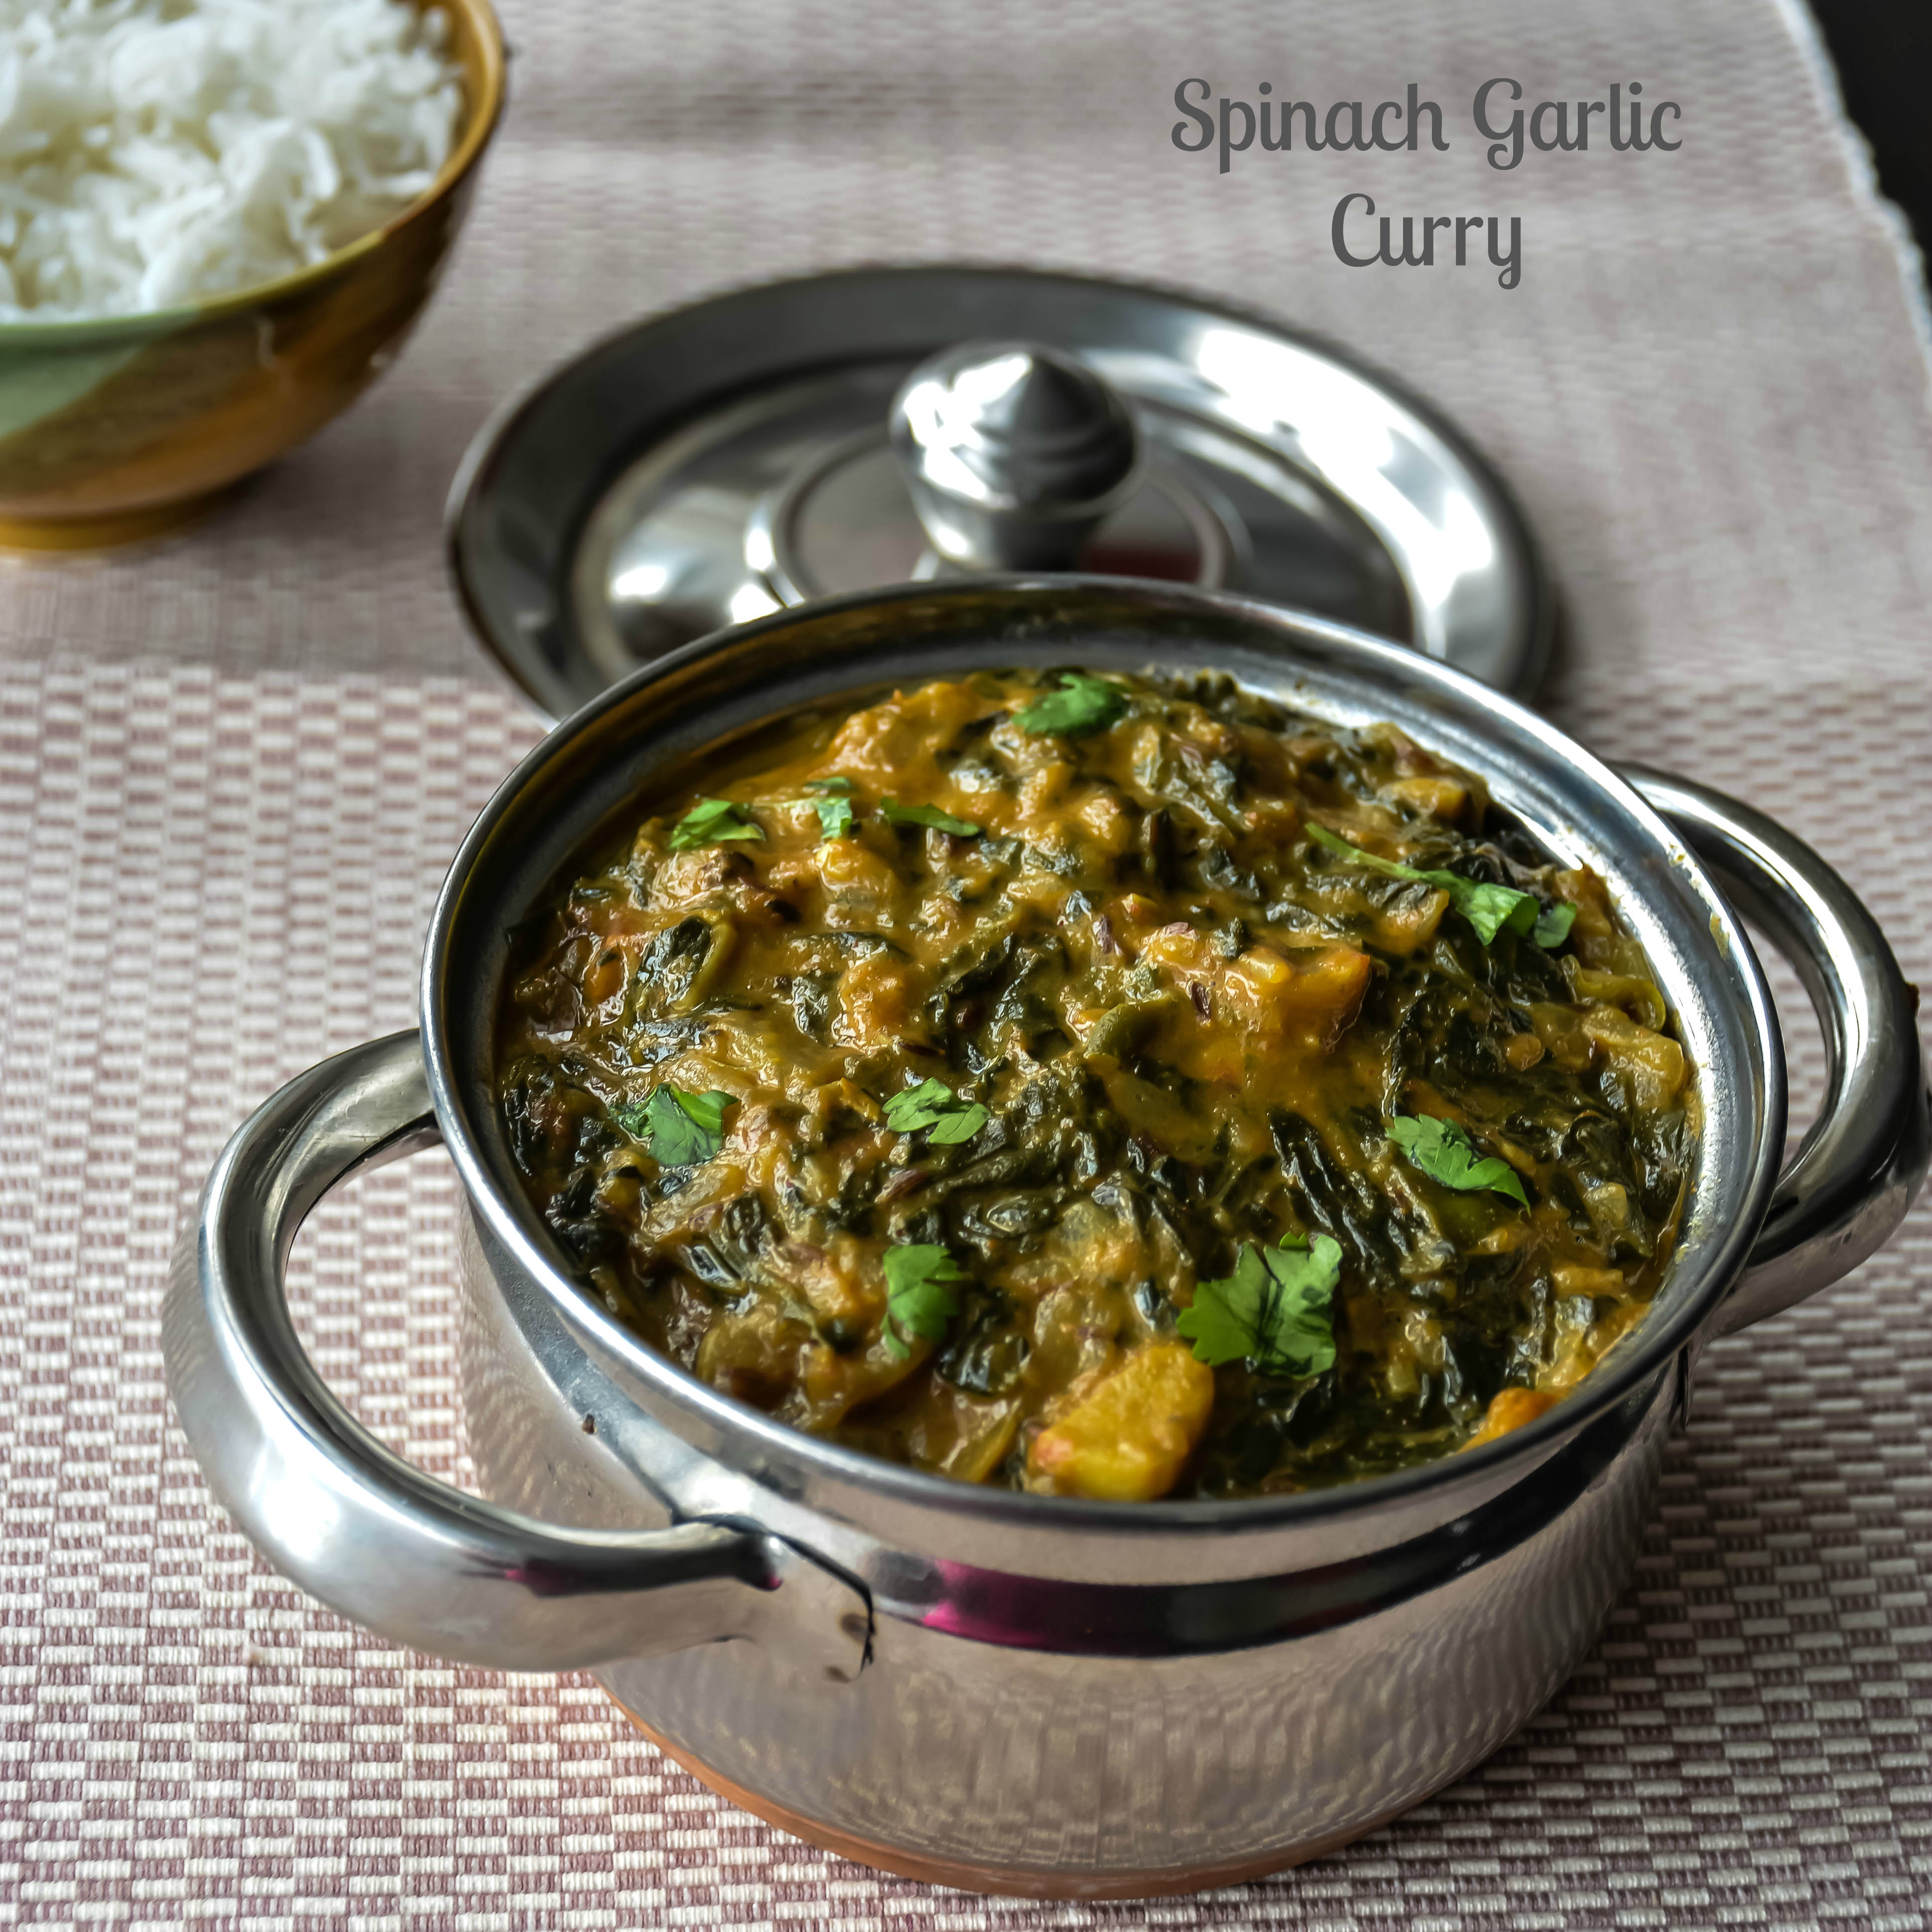 Spinach Garlic Curry